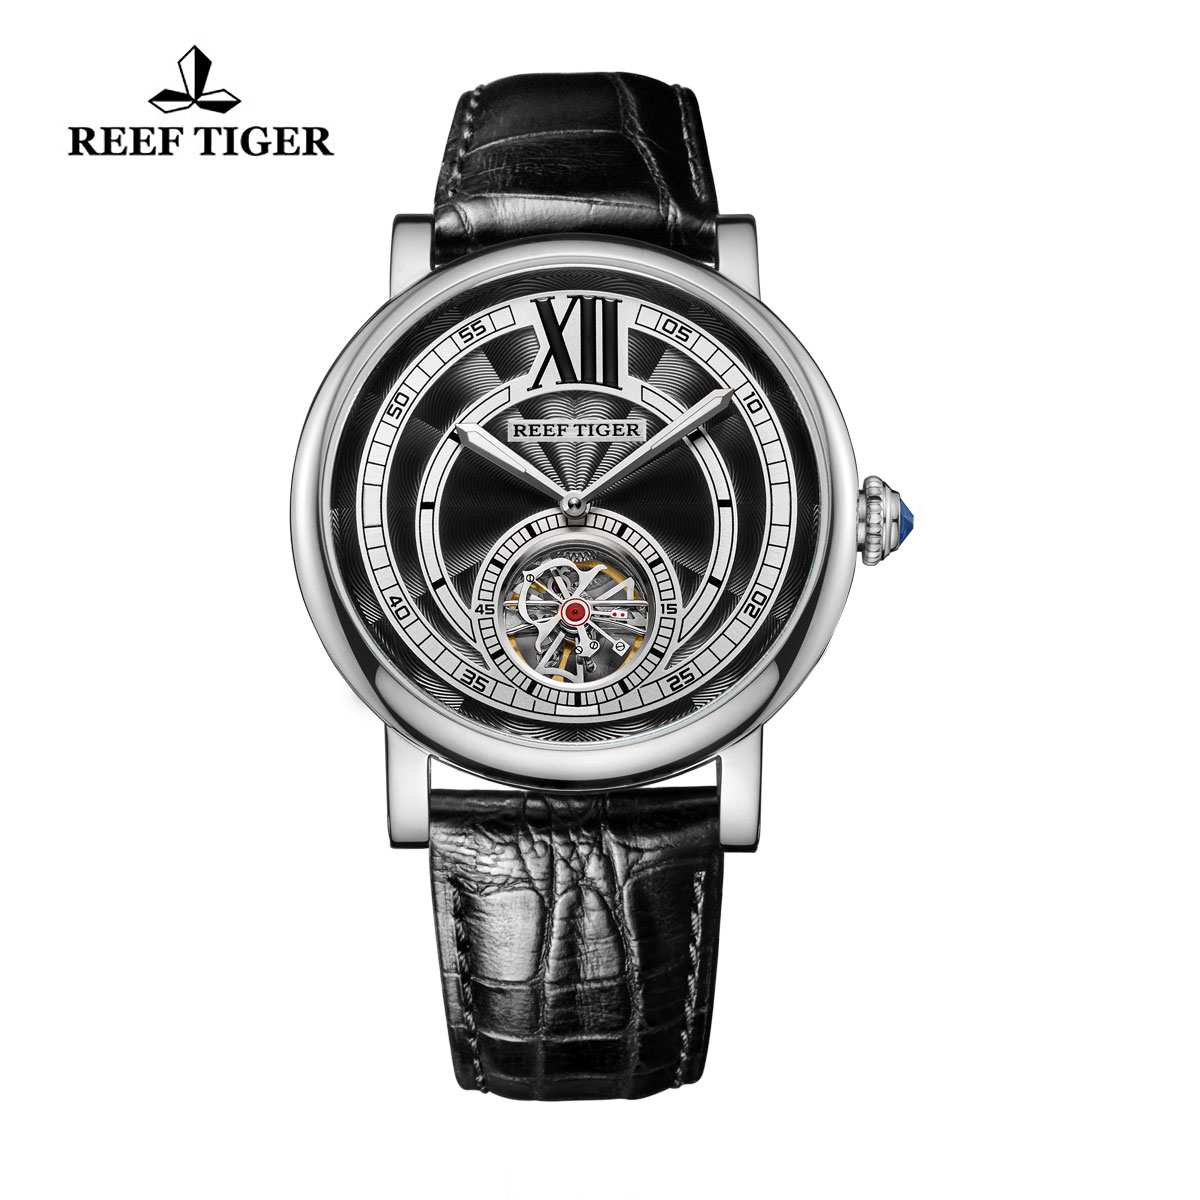 Reef Tiger Royal Crown Tourbillon Watches Blue Crystal Crown Calfskin Leather Strap RGA192